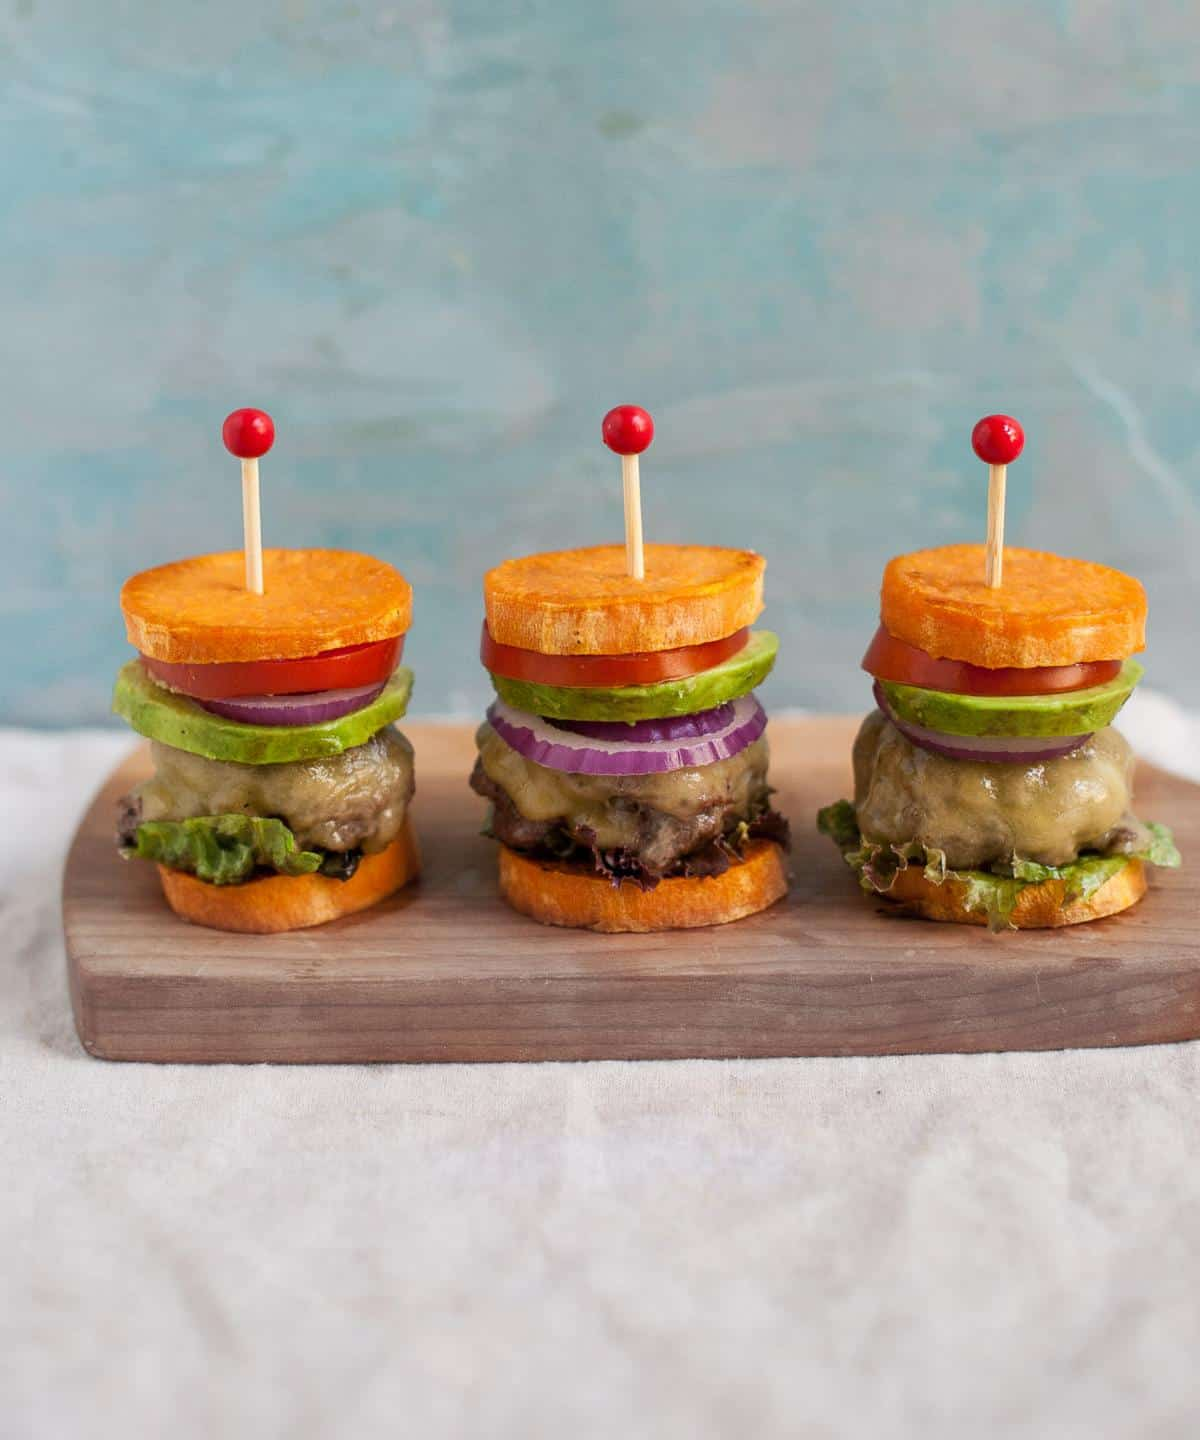 side view of 3 burger sliders on a board